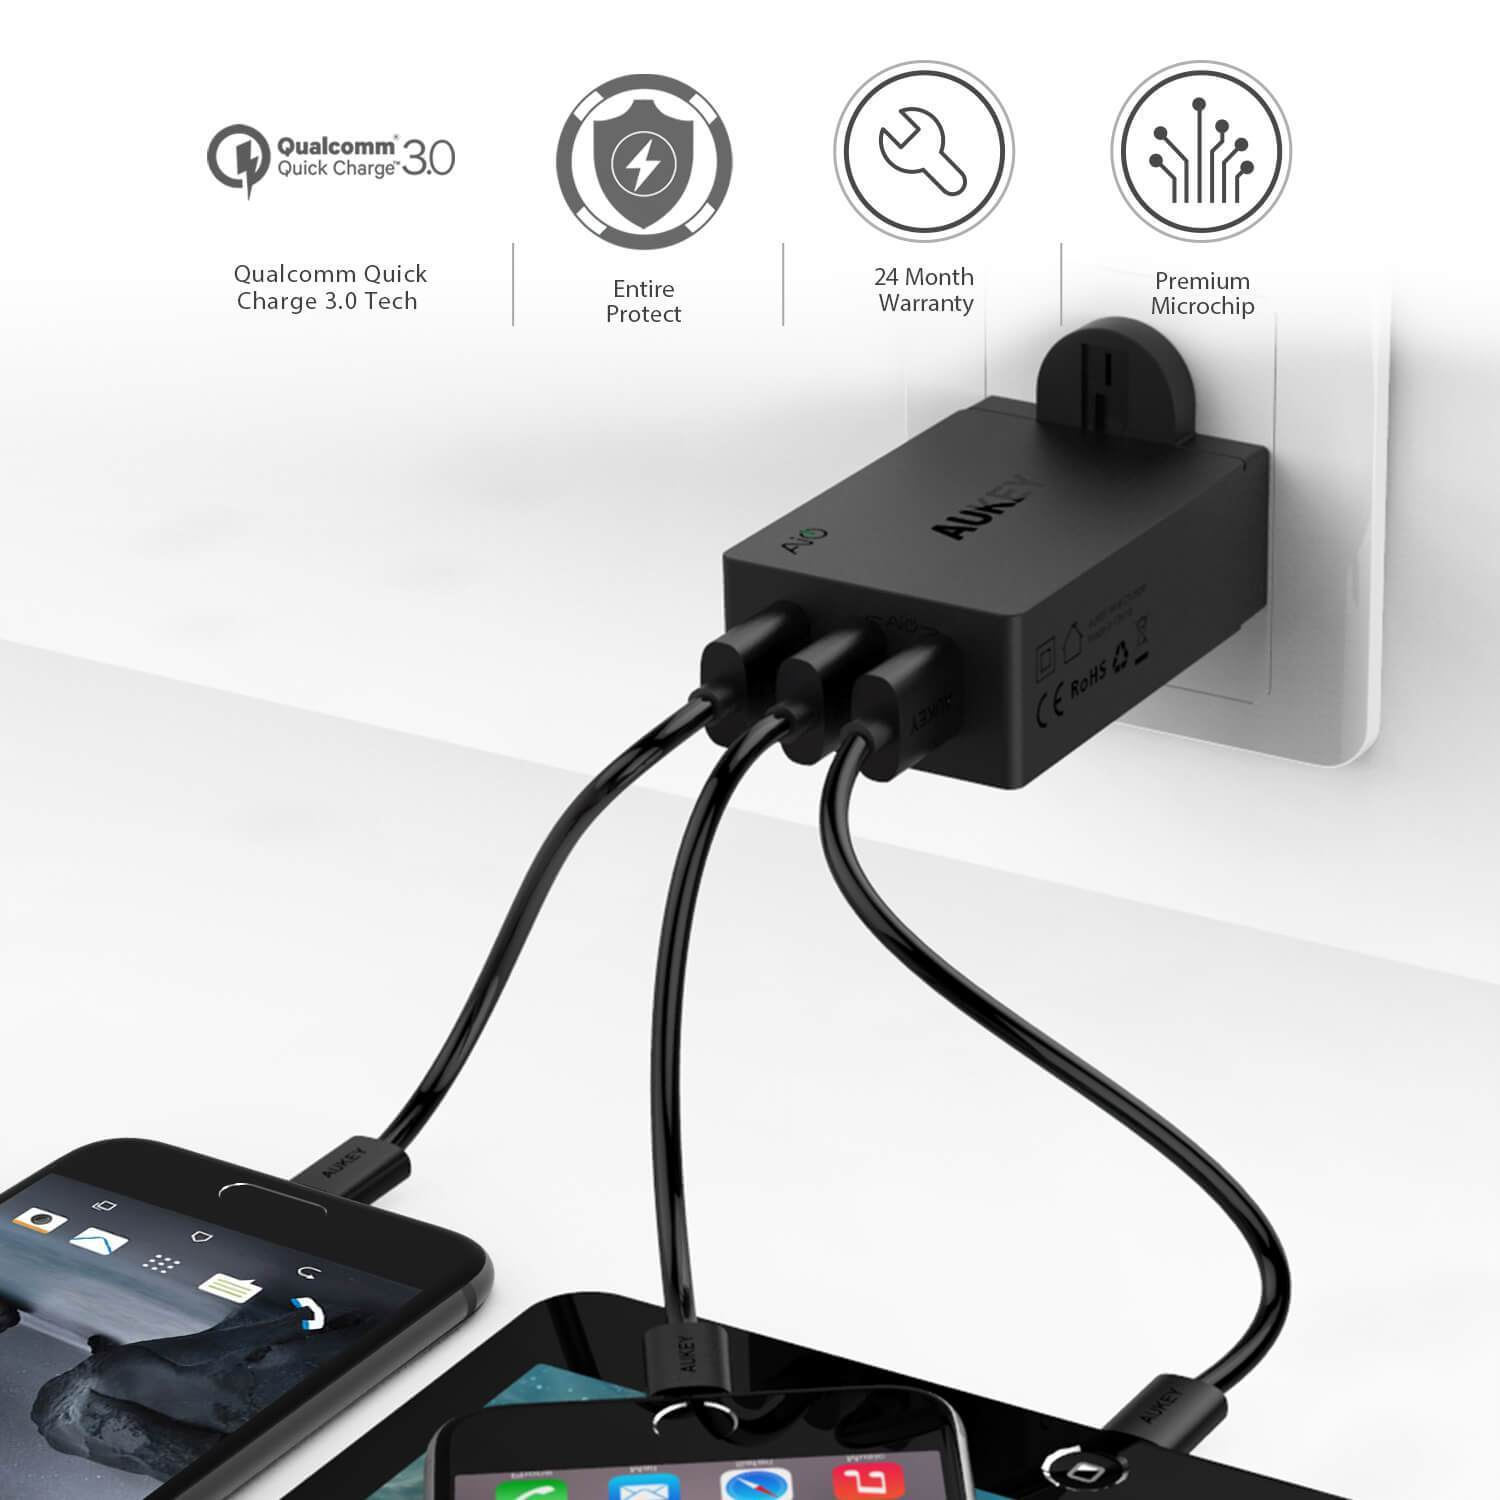 AUKEY® 3-Port 42W USB Wall Charger with Quick Charge 3.0 - Add-on™ Store